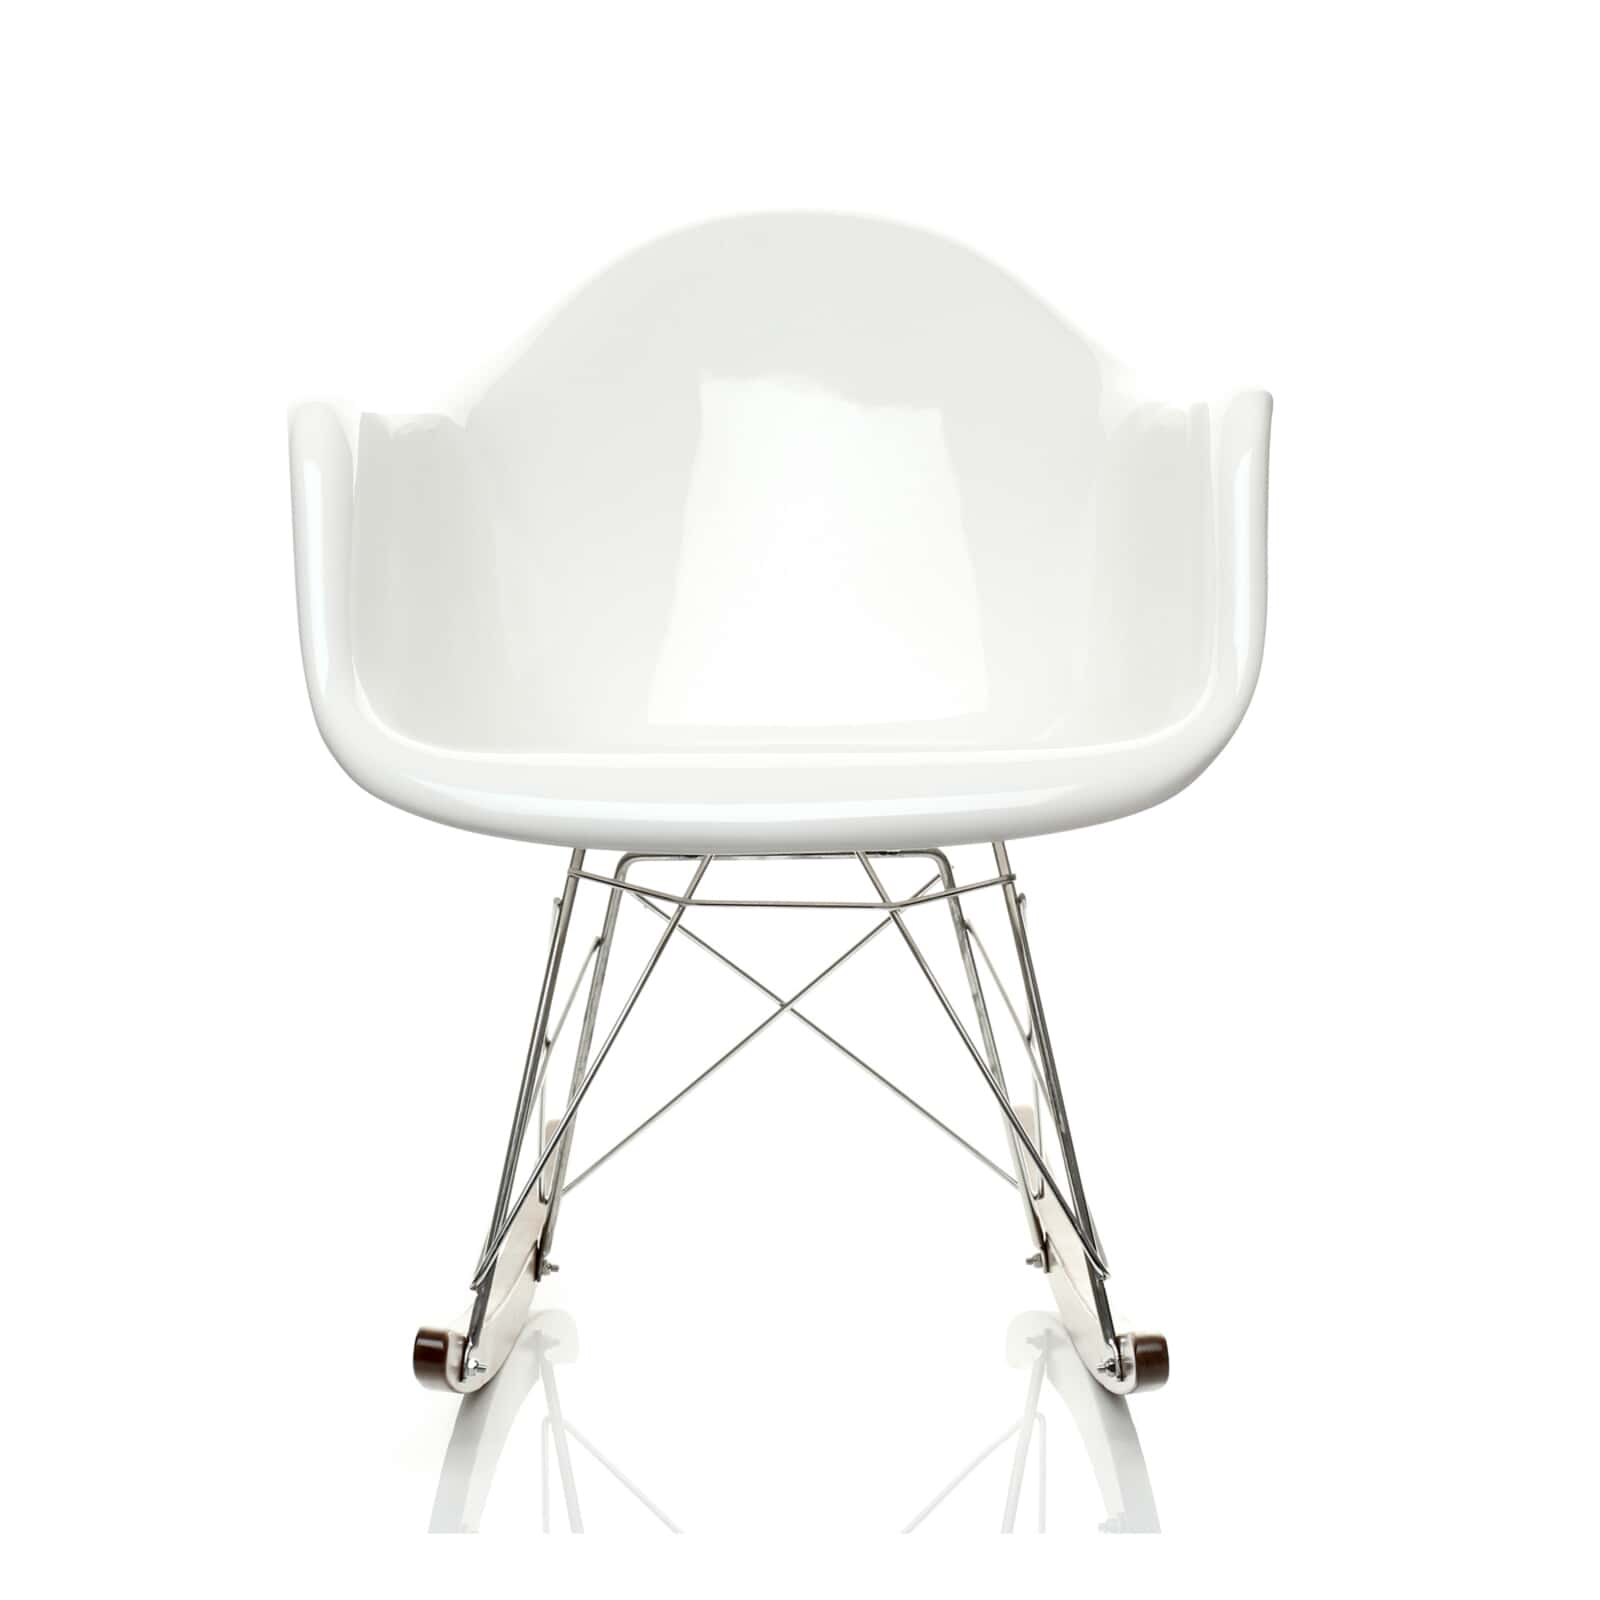 Awesome Charles E Style Retro Rar Fibreglass Rocking Chair Style Gmtry Best Dining Table And Chair Ideas Images Gmtryco